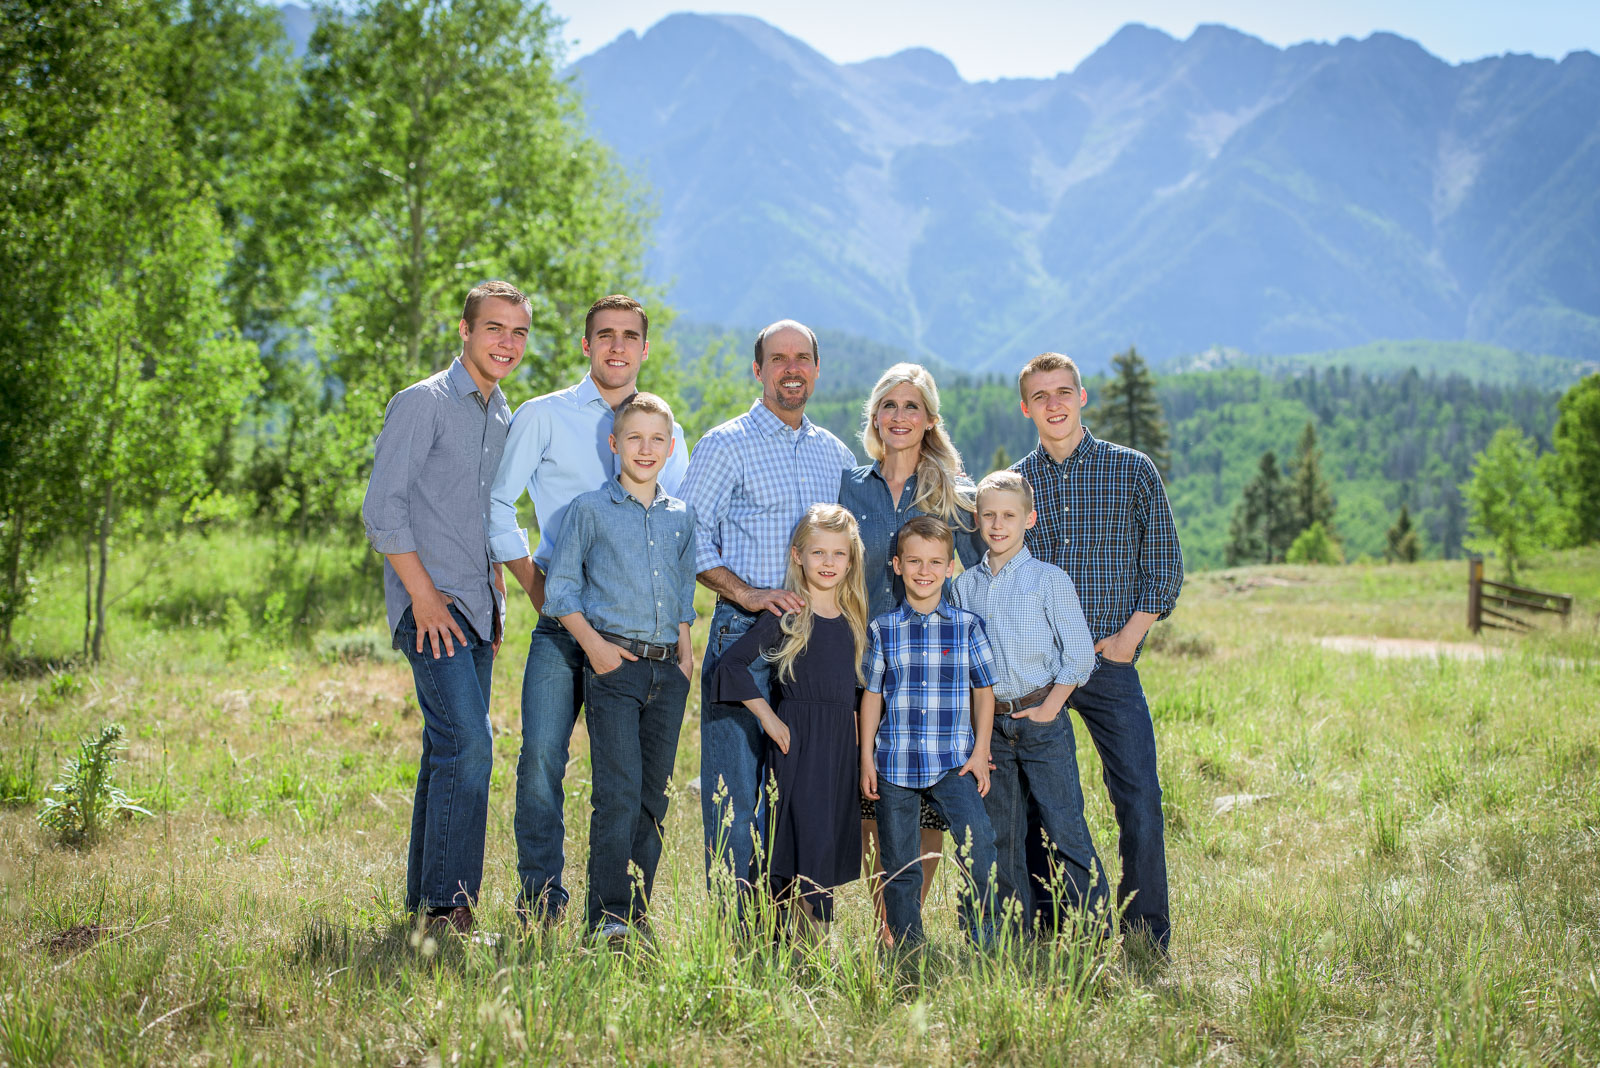 Summer Family Portraits in Durango